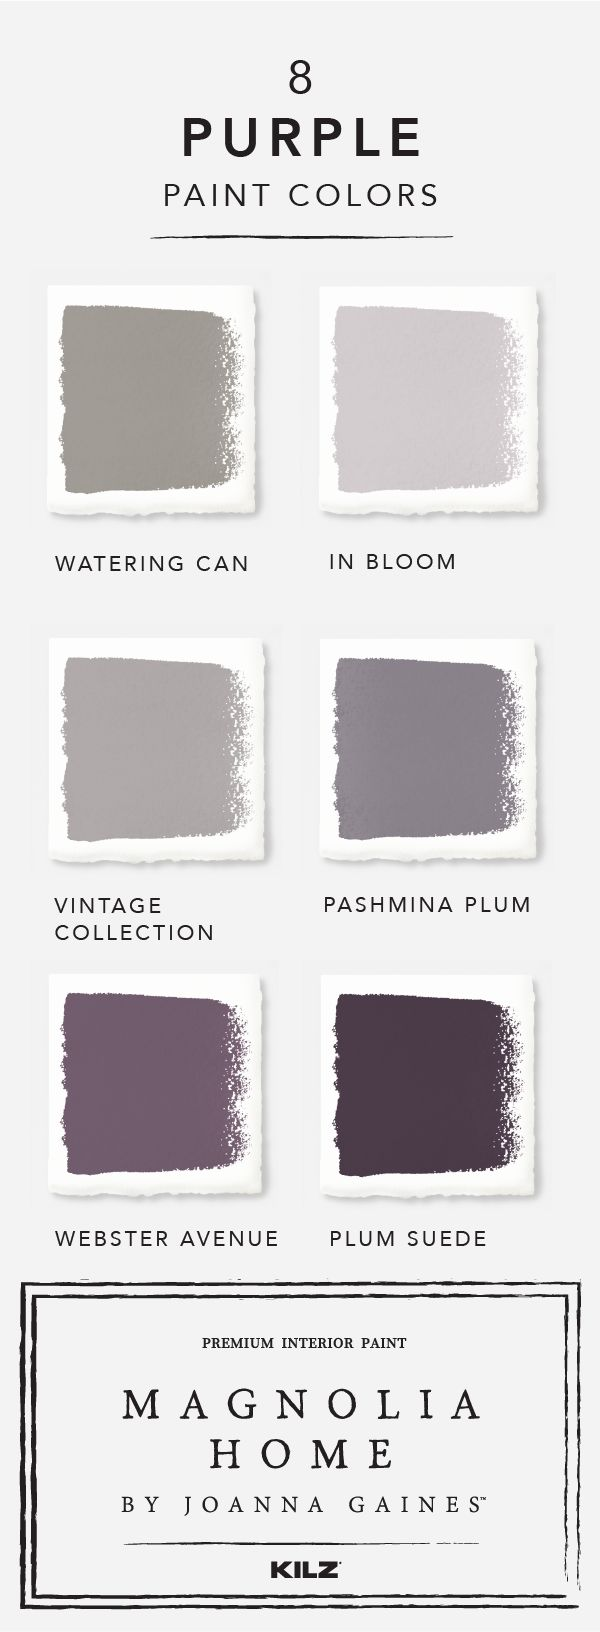 Bring Your Design Vision Together With Purple Hues From Magnolia Home By Joanna Gaines Paint Collection Explore A Range Of Shades Like In Bloom